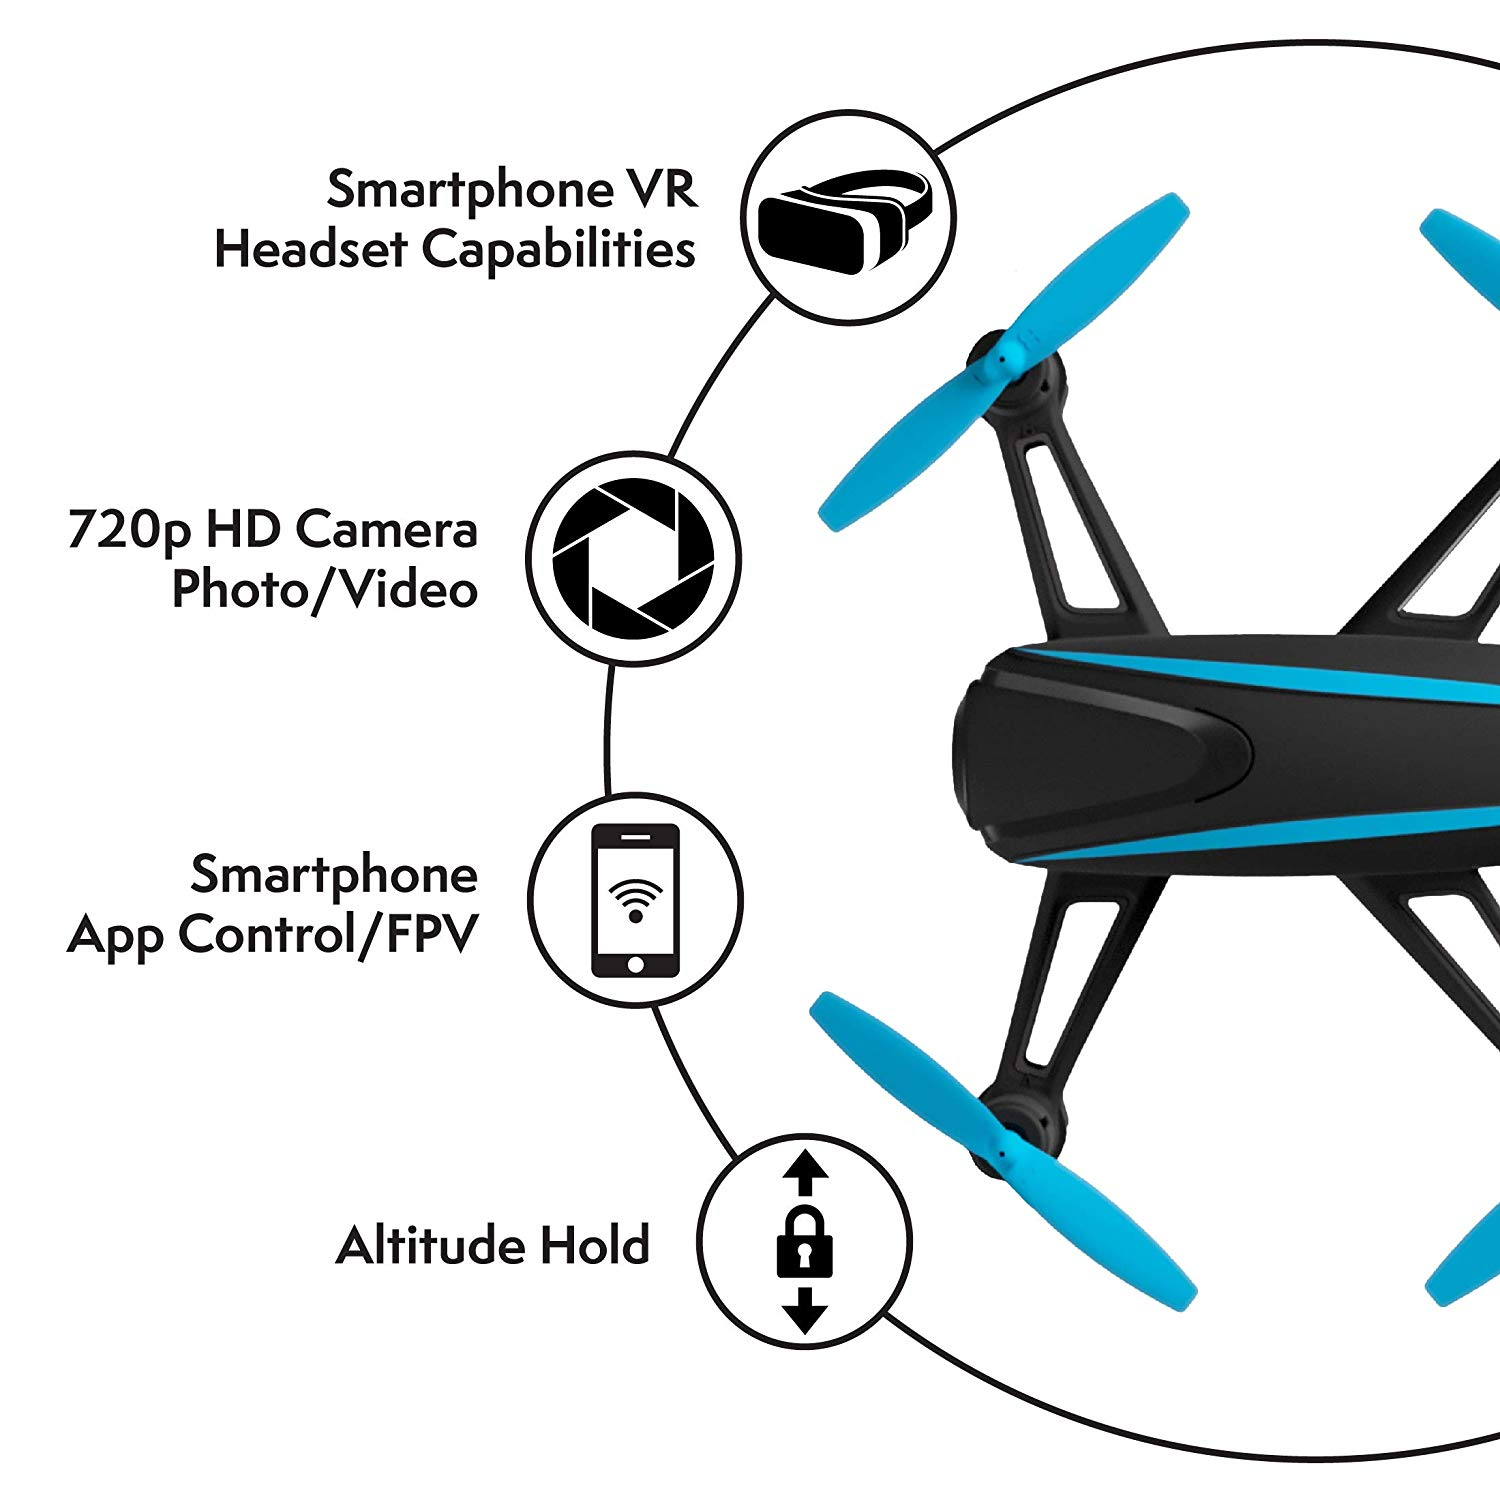 Force1 Camera Drones Coupon Code for Lowest Price EVER